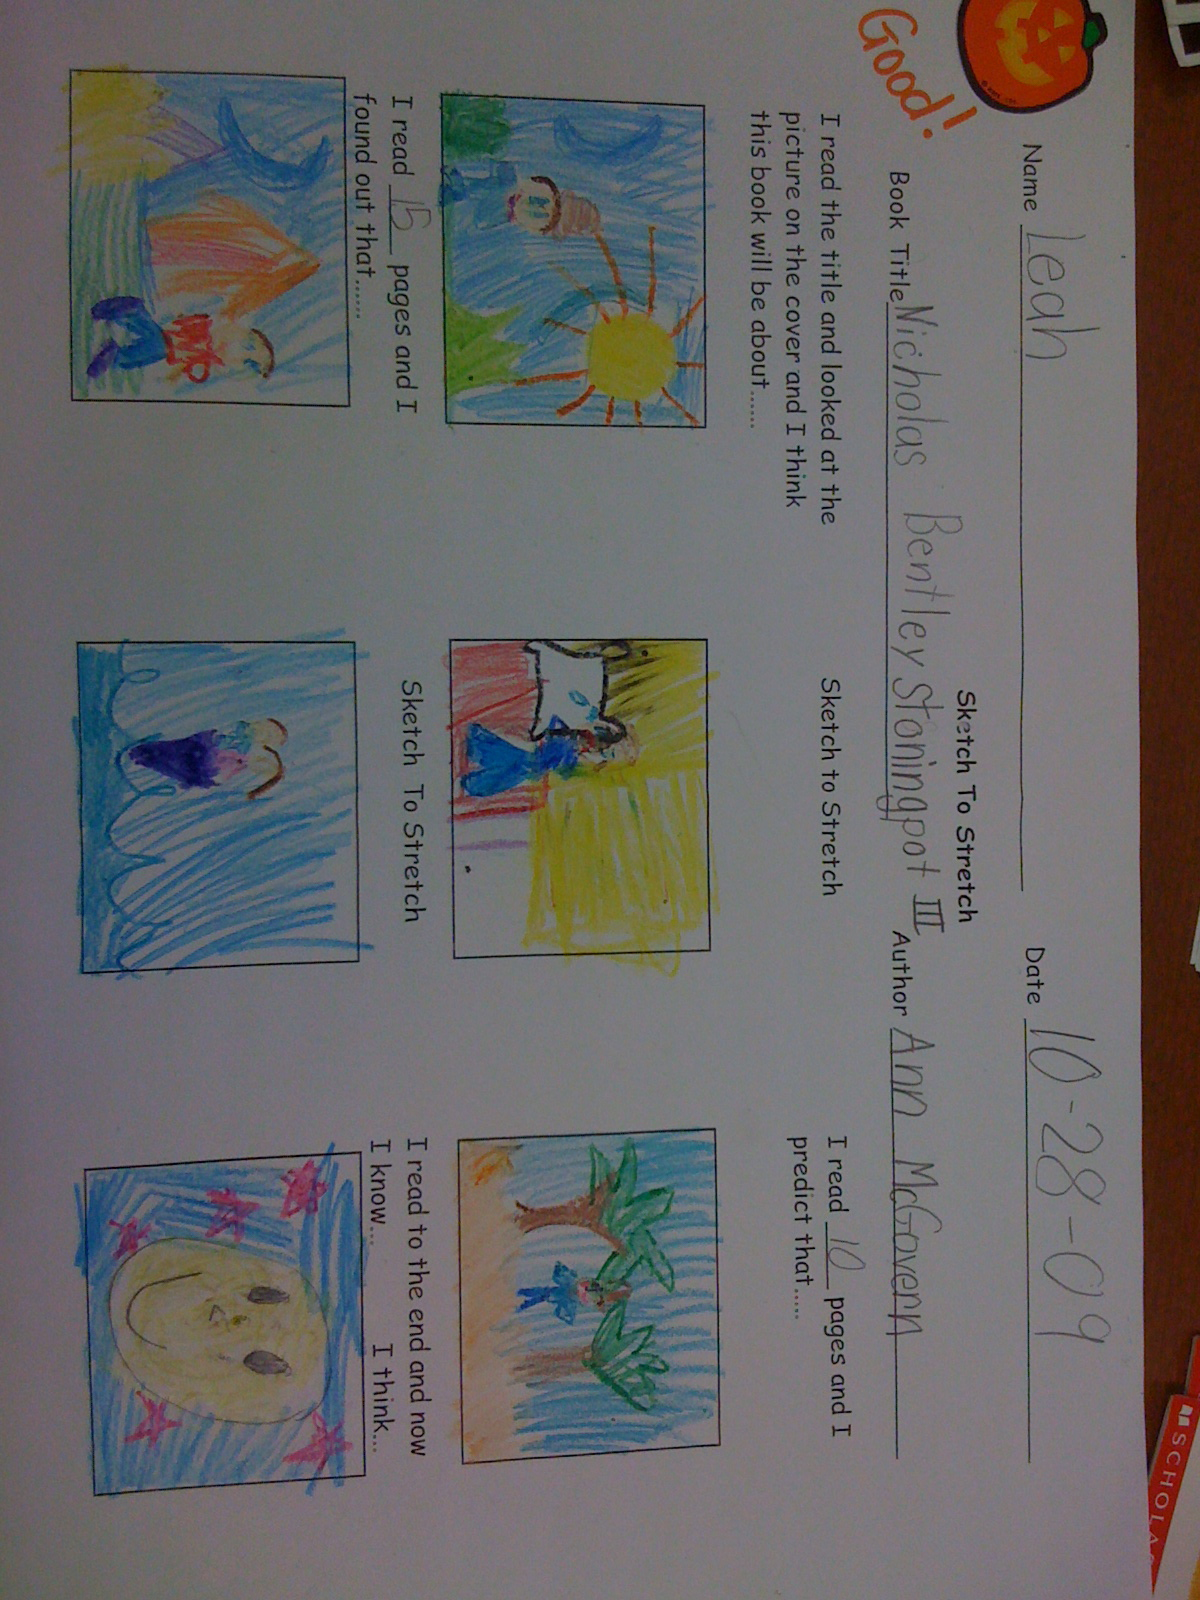 Img likewise Positions Worksheet as well By Grid besides Chores Flashcards as well Scaletowidth. on blog havefunteaching